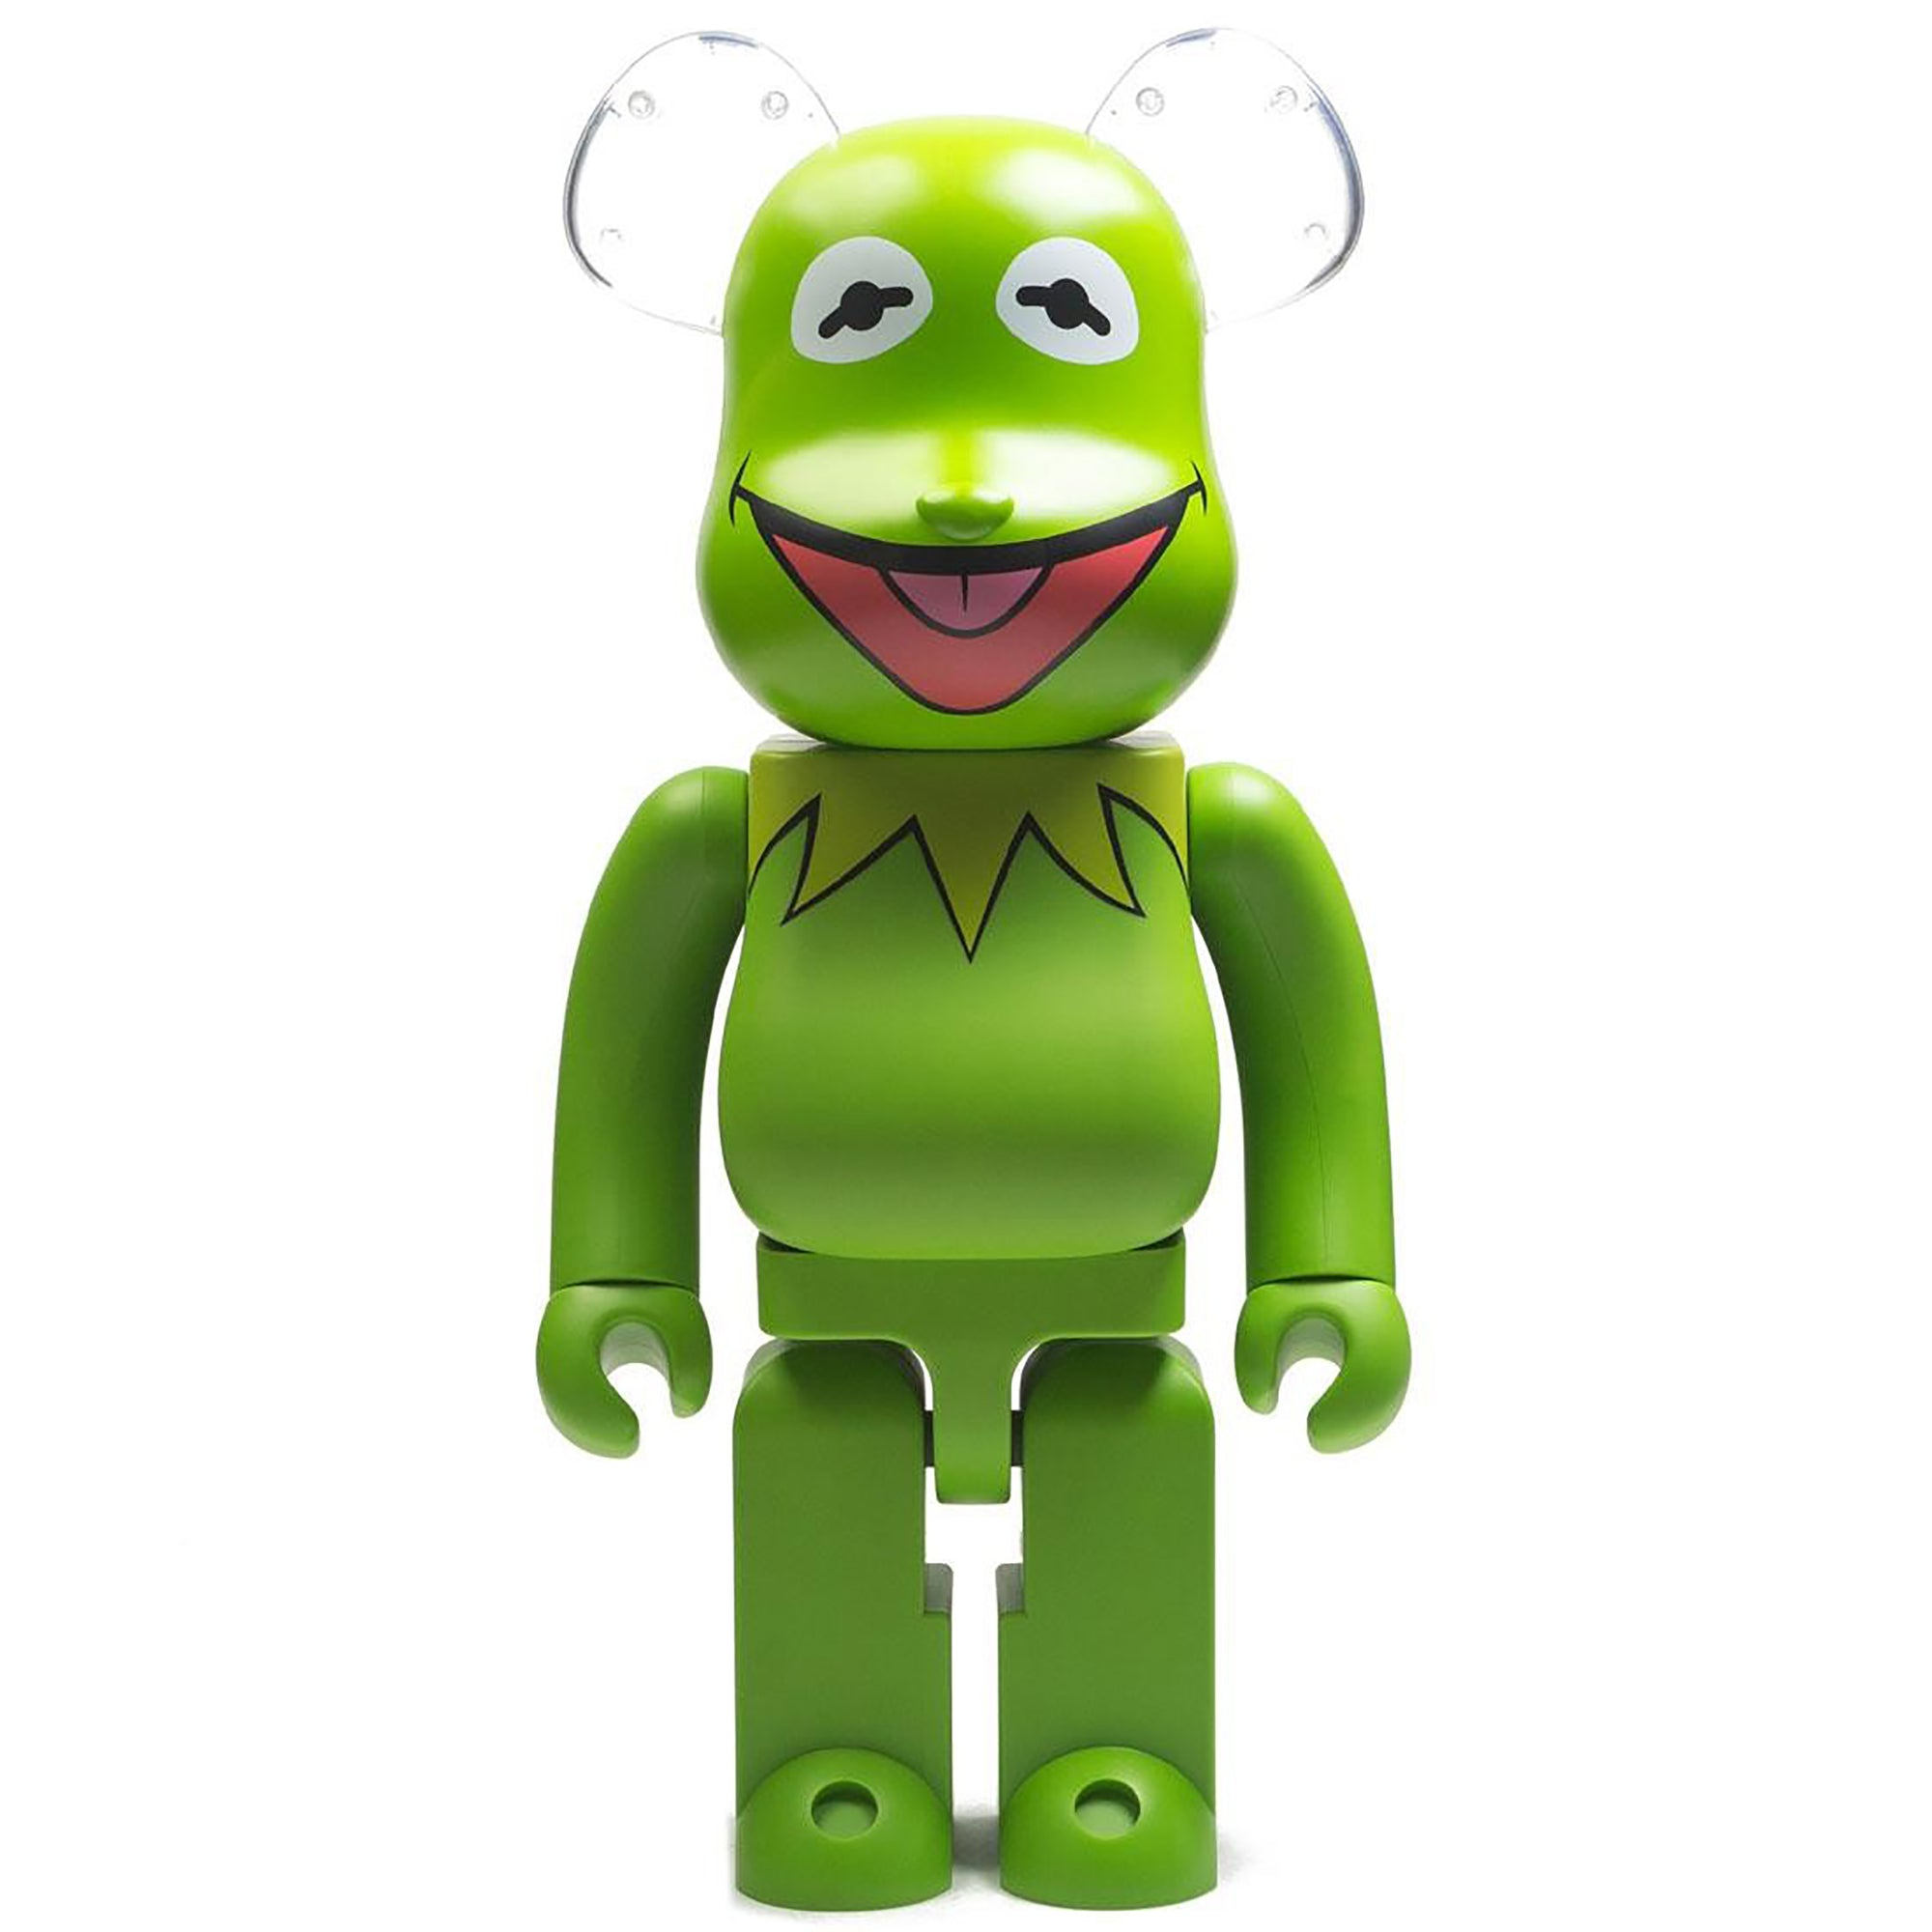 Muppets Kermit The Frog 1000% Bearbrick by Medicom Toy